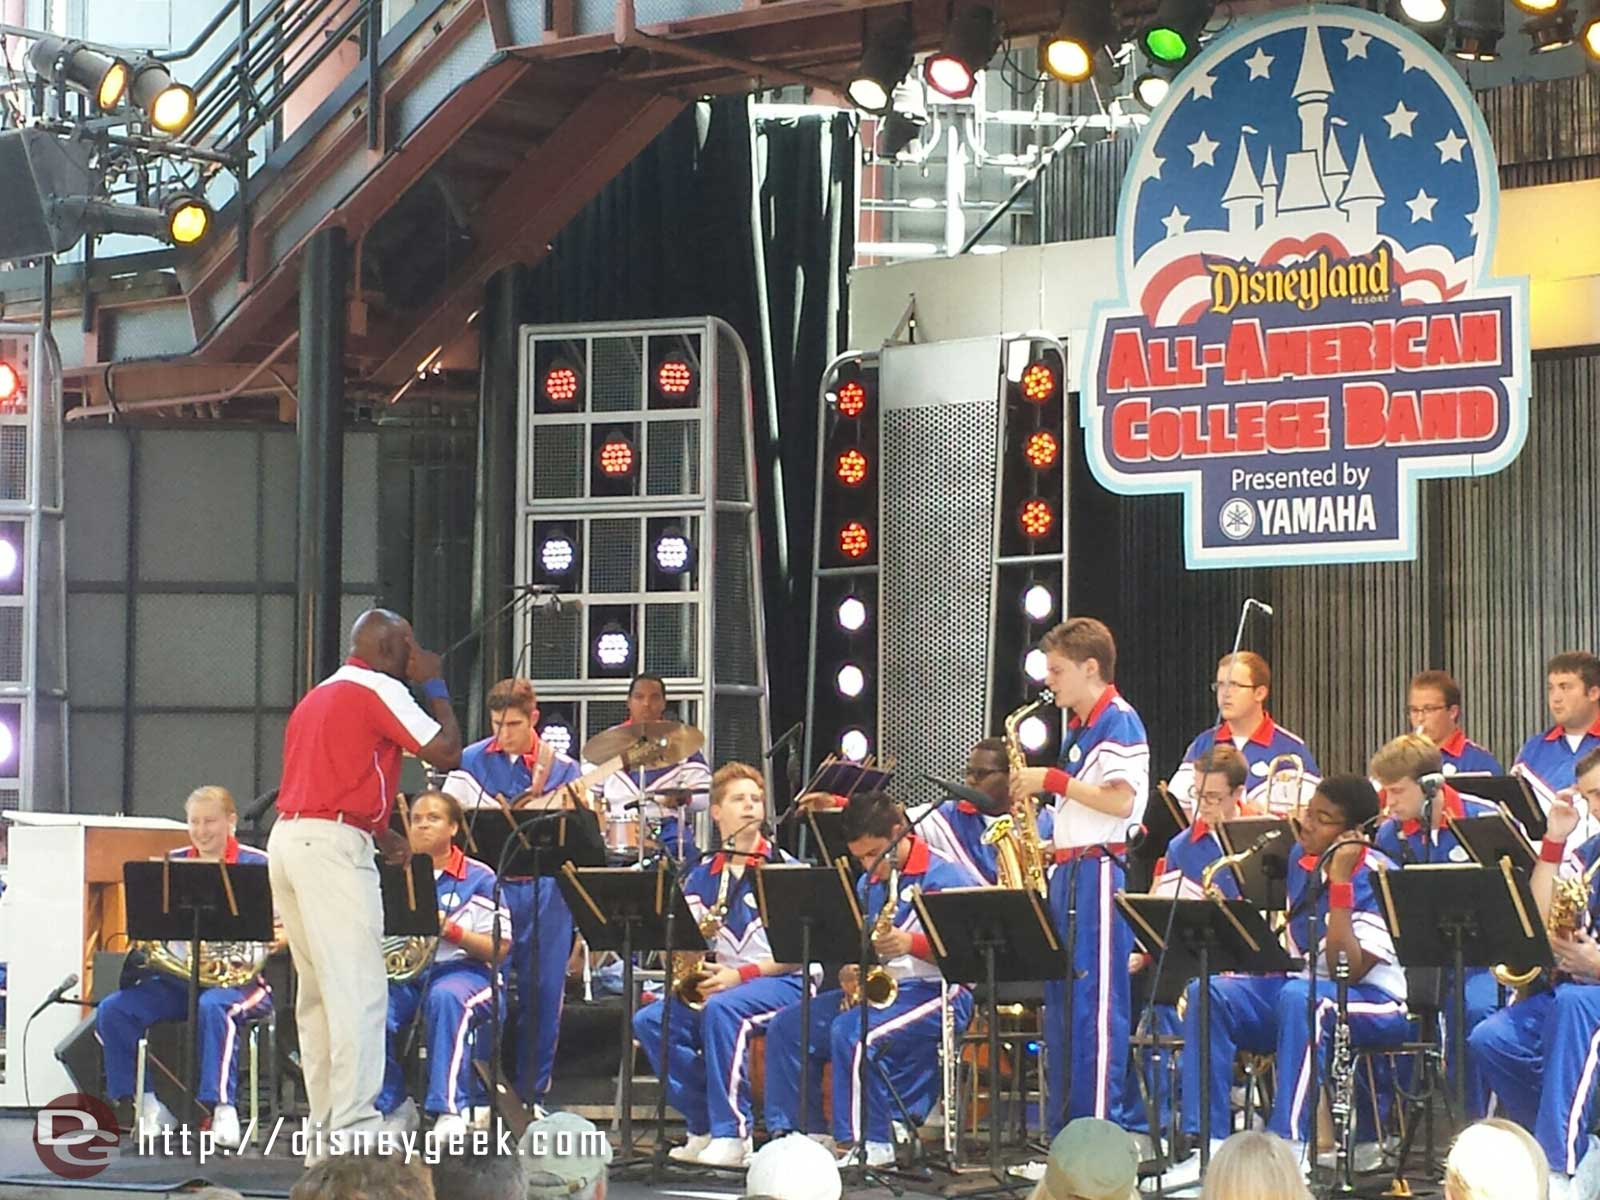 Only one more week left to enjoy the 2014 #Disneyland All-American College Band here they are at the 1:50 set in Hollywood Land